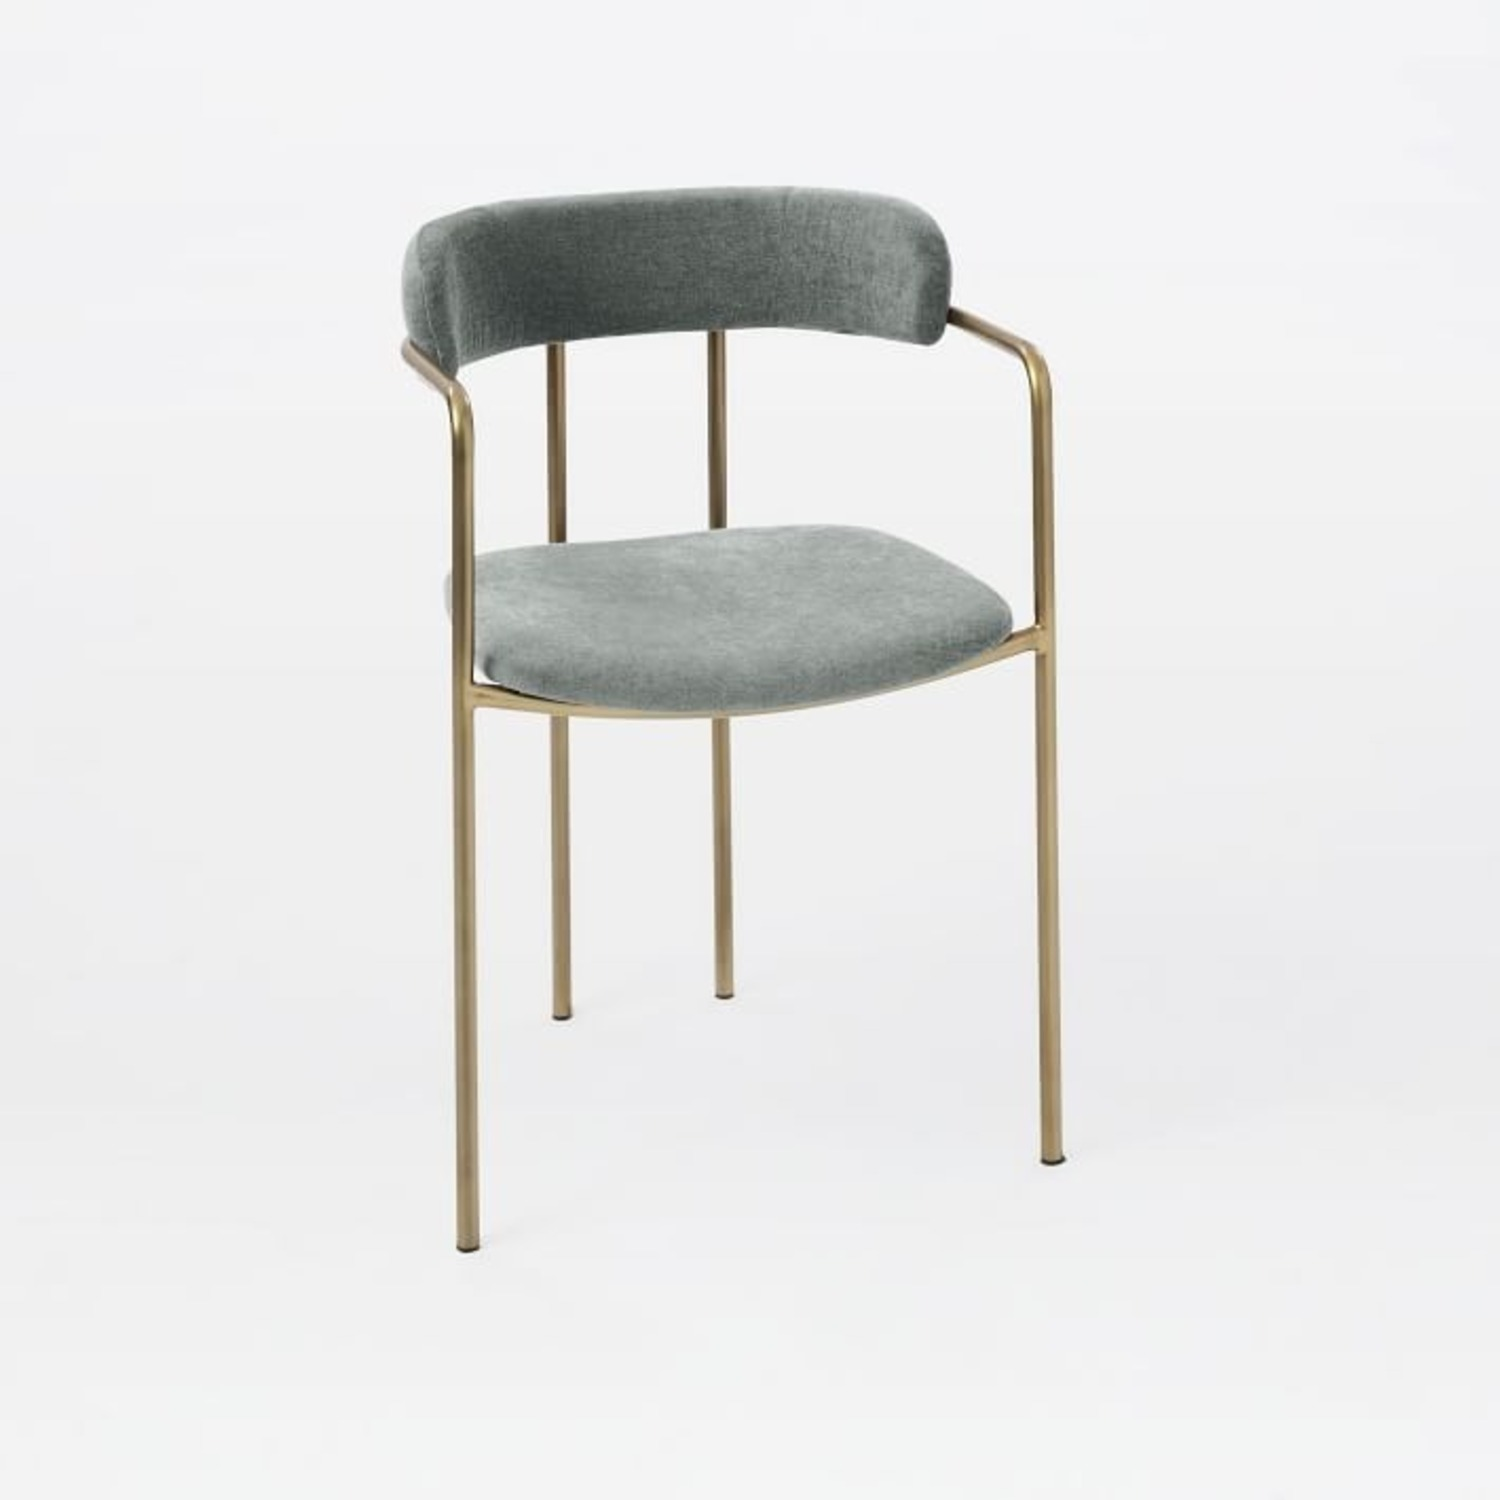 West Elm Lenox Upholstered Dining Chair - image-1